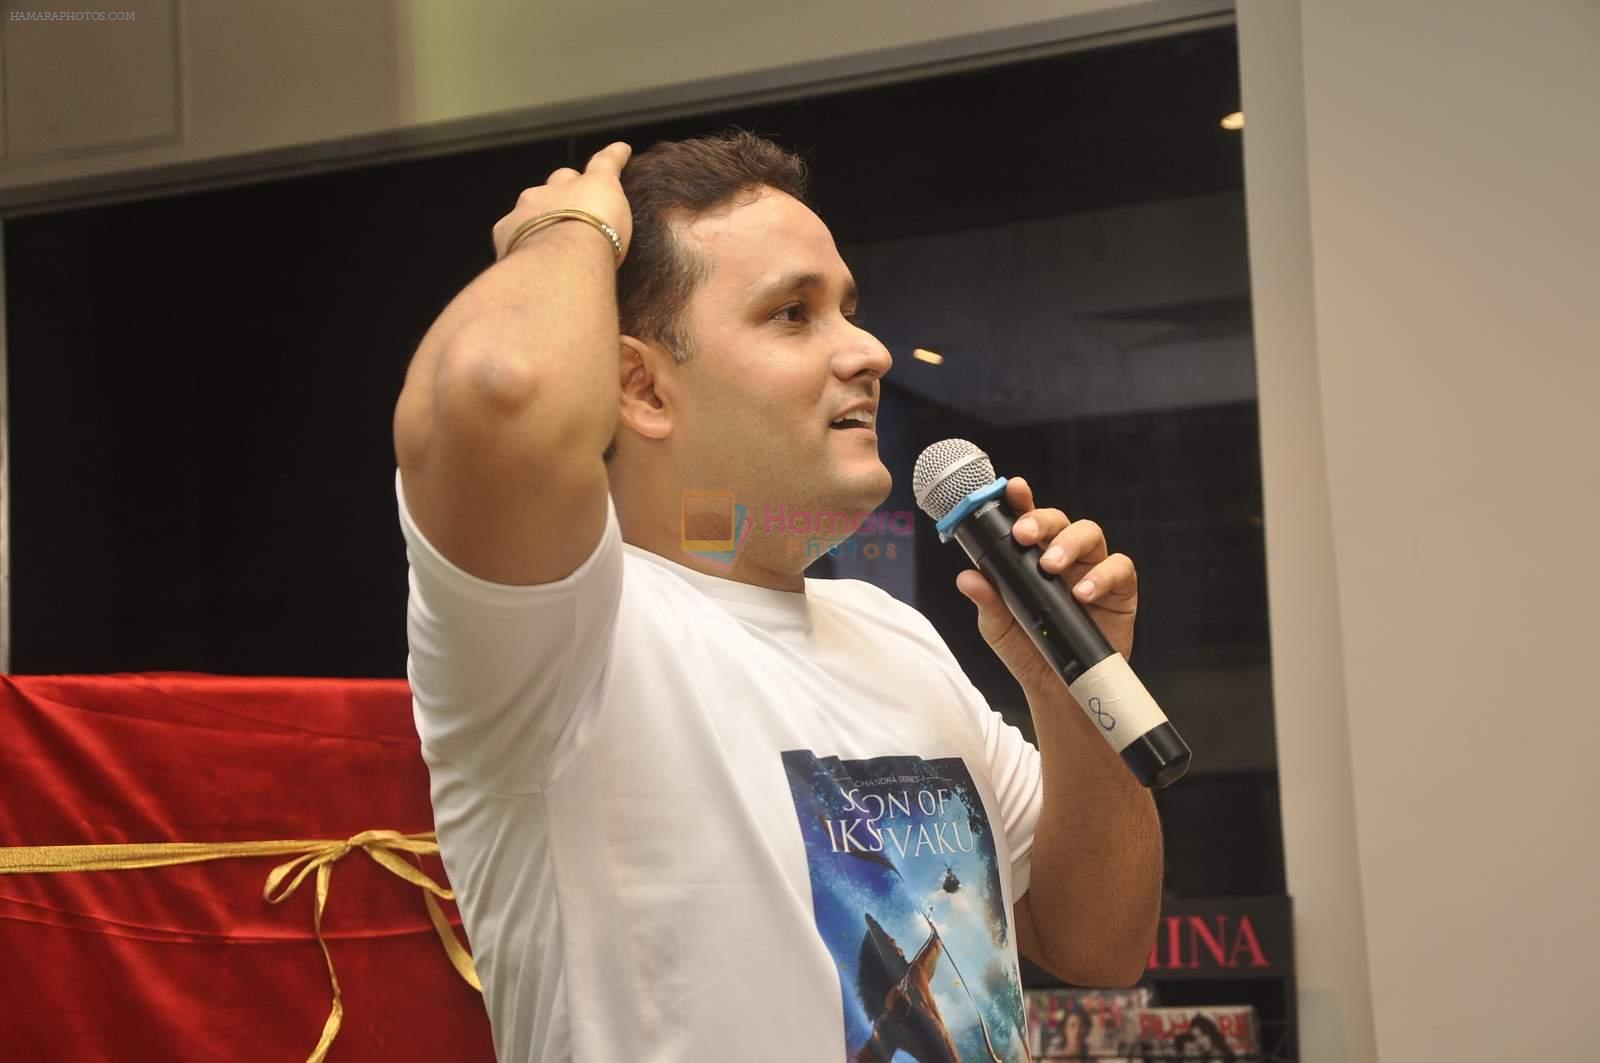 Amish Tripathi's book Scion of Ikshvaku launch in crossword on 22nd June 2015